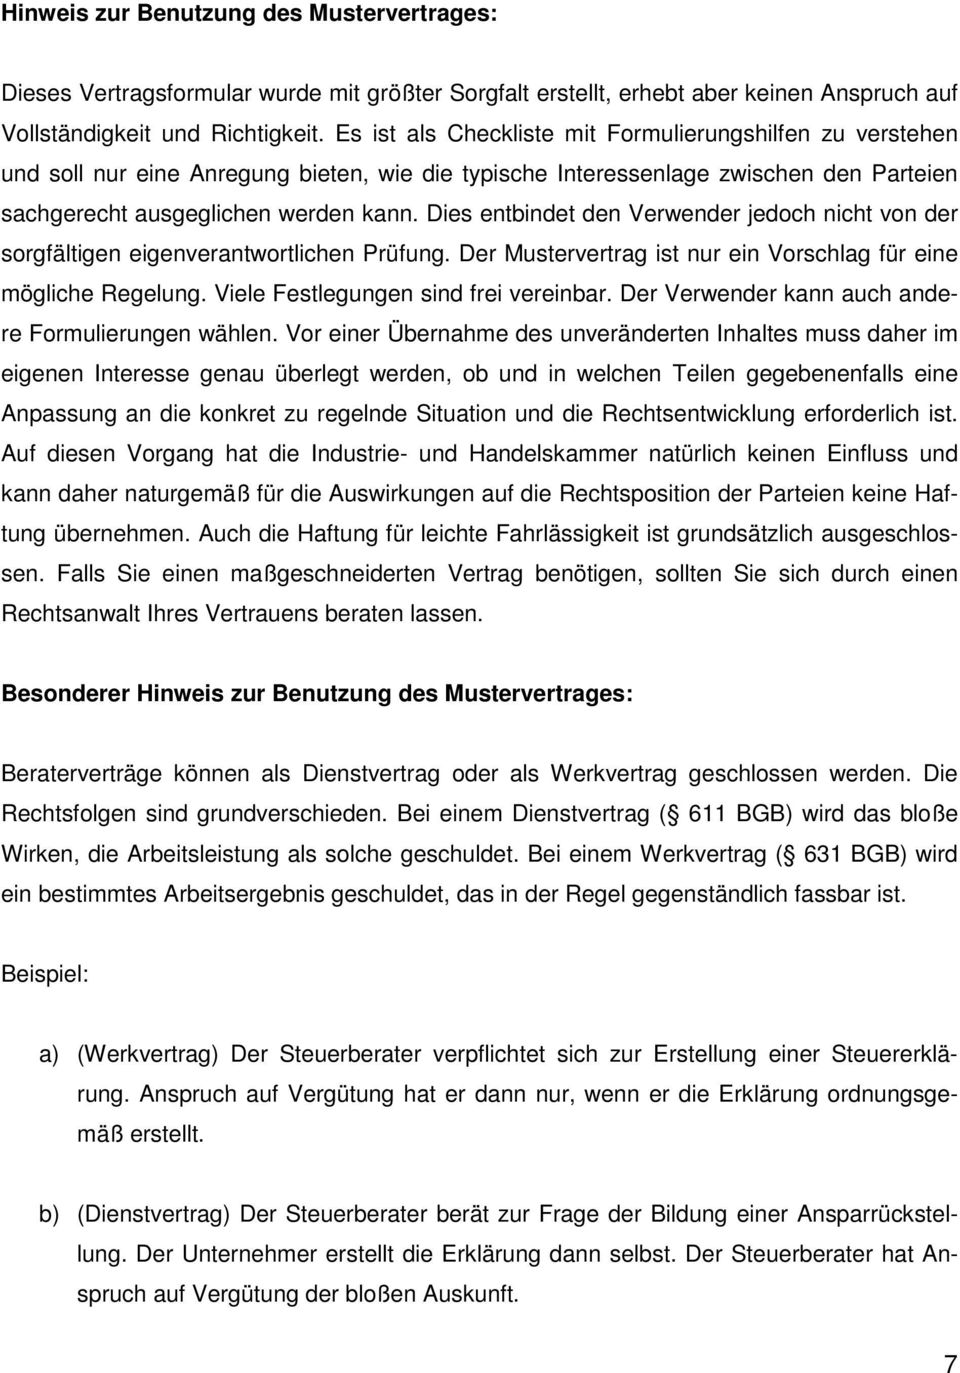 Muster Eines Beratervertrages Pdf